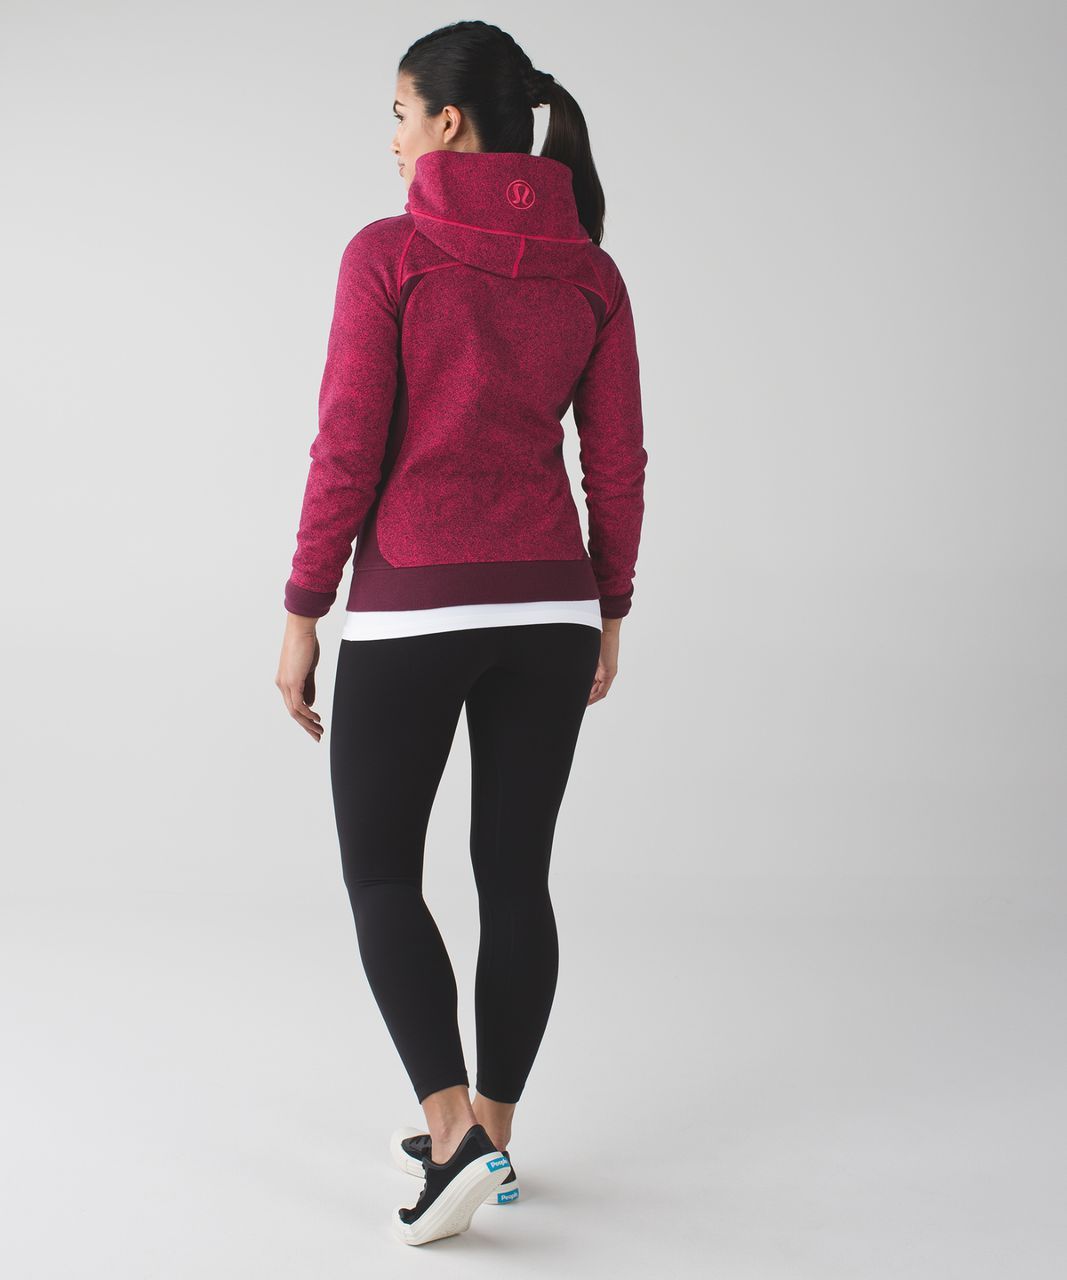 Lululemon Scuba Hoodie III - Rio Mist Boom Juice Red Grape / Red Grape